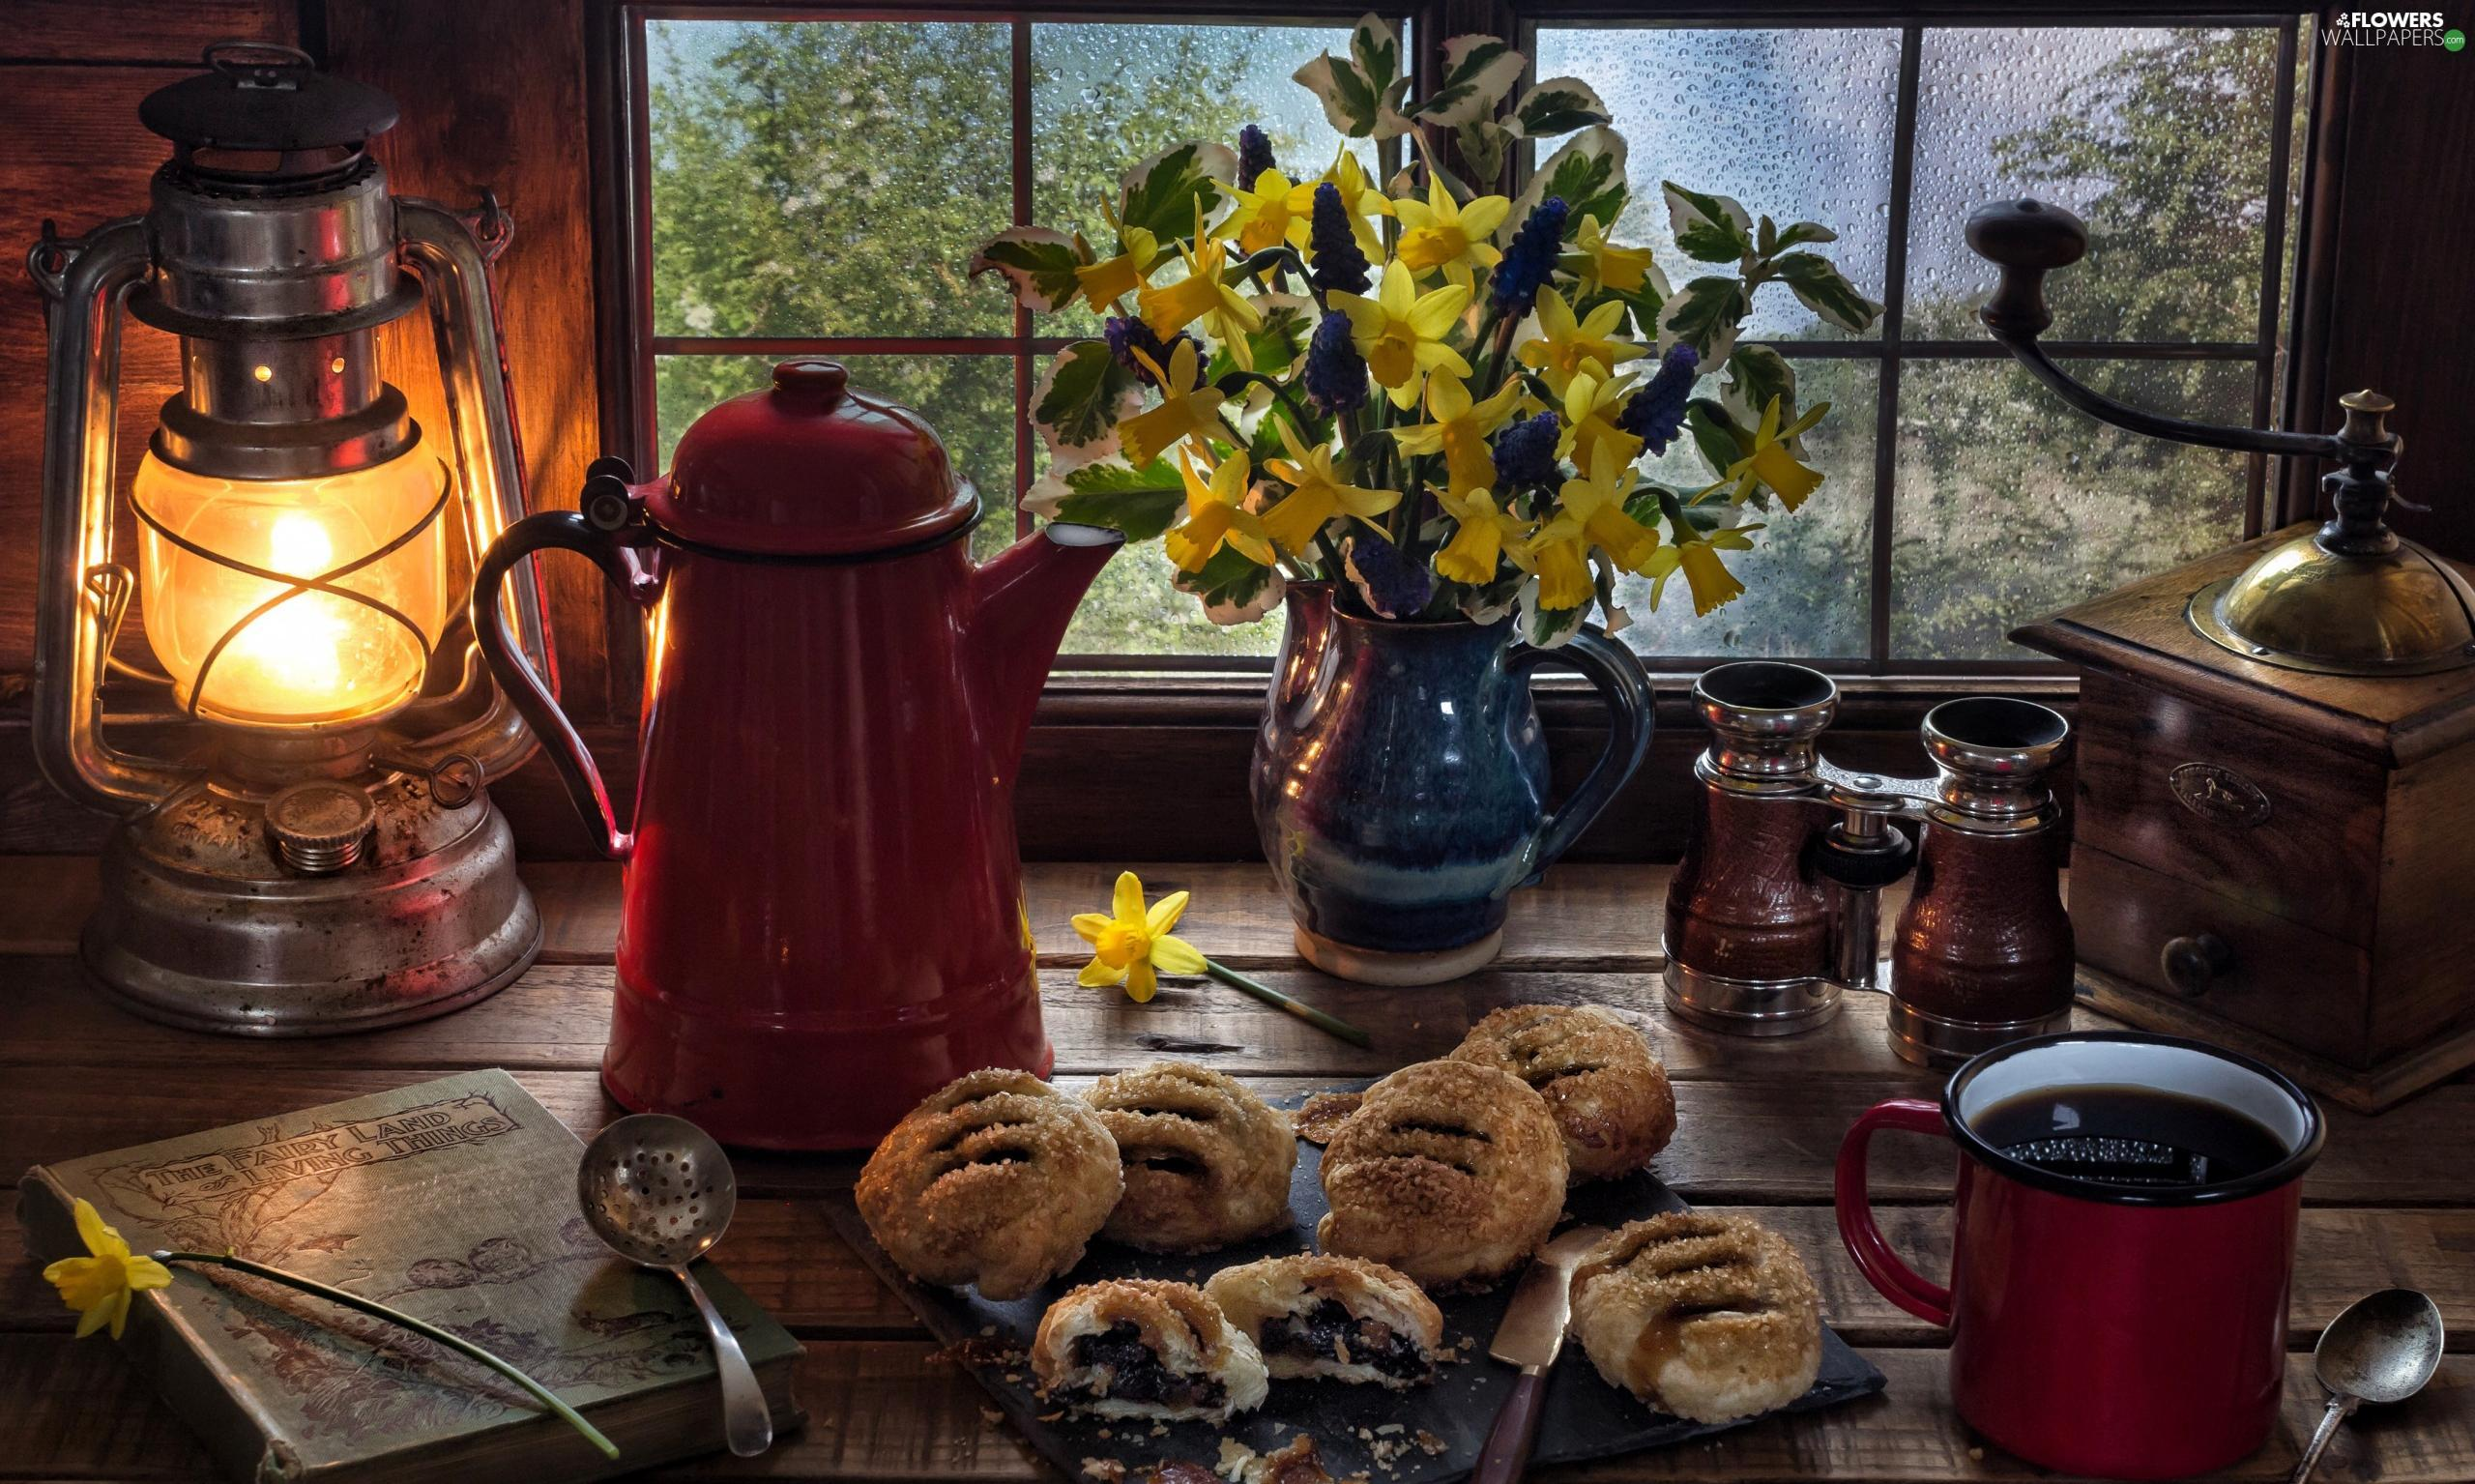 cookies, Book, coffee, jug, Vase, mill, binoculars, composition, Window, Oil Lamp, Daffodils, bouquet